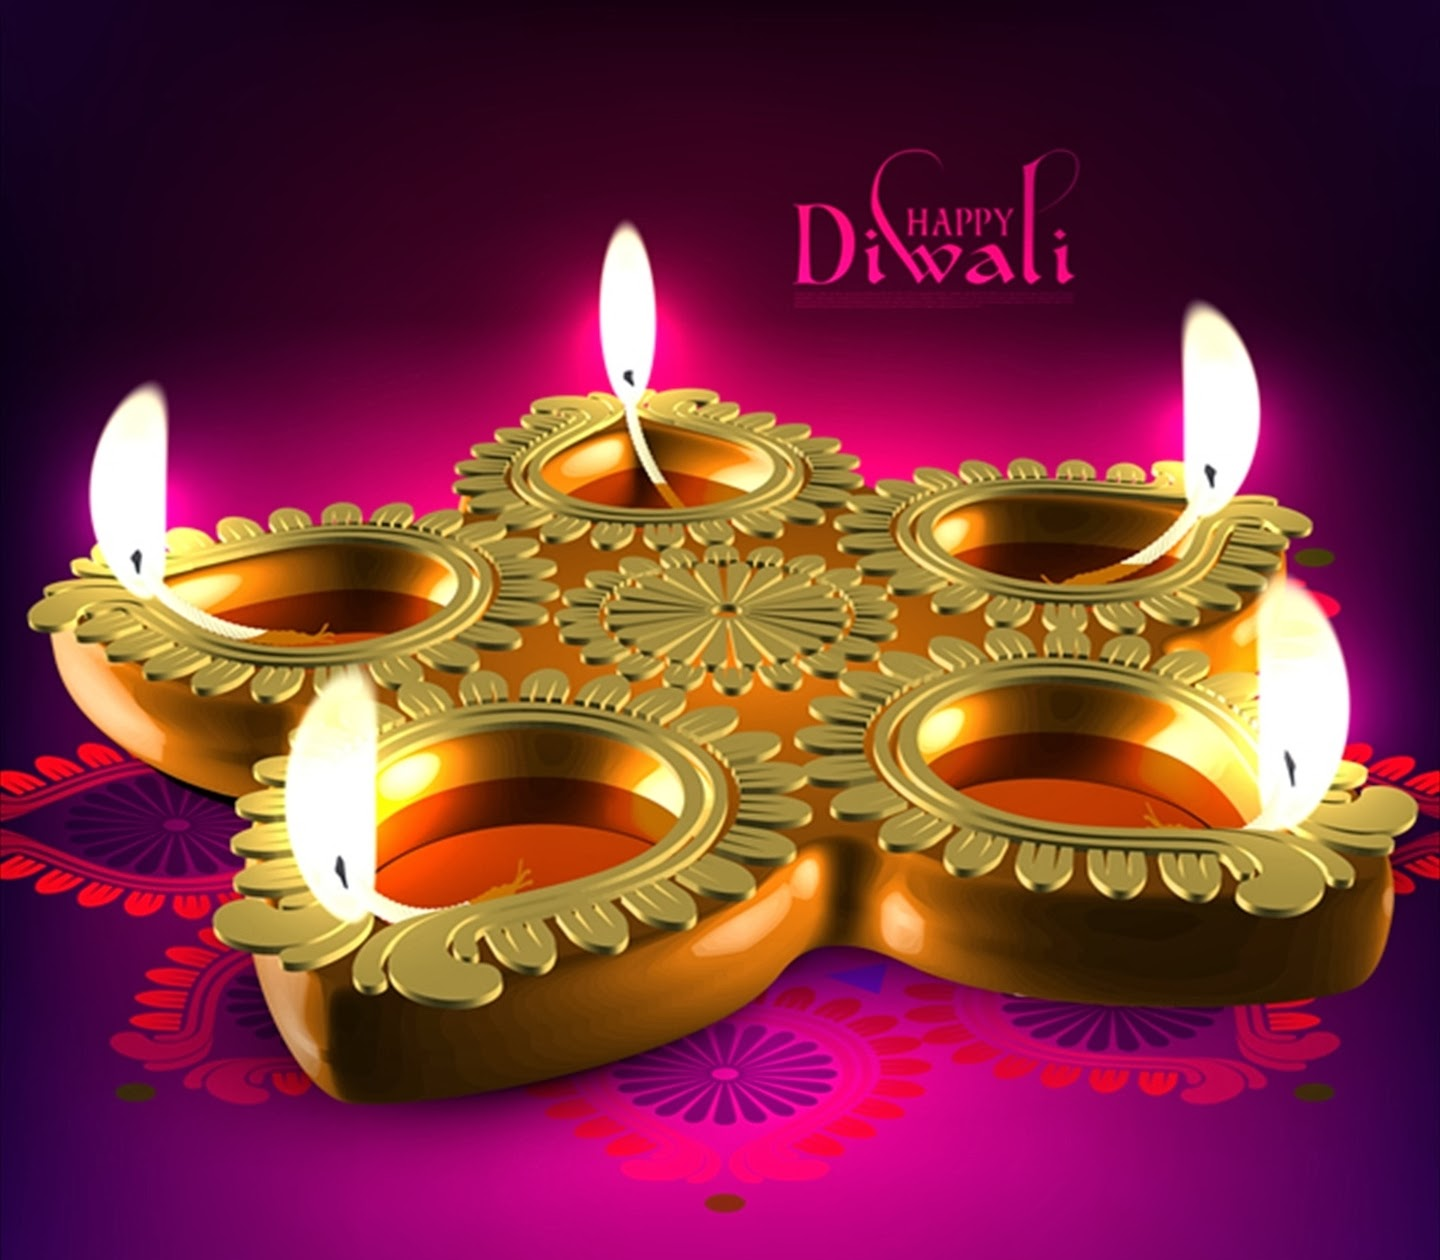 Image of Deepavali Indian Festival